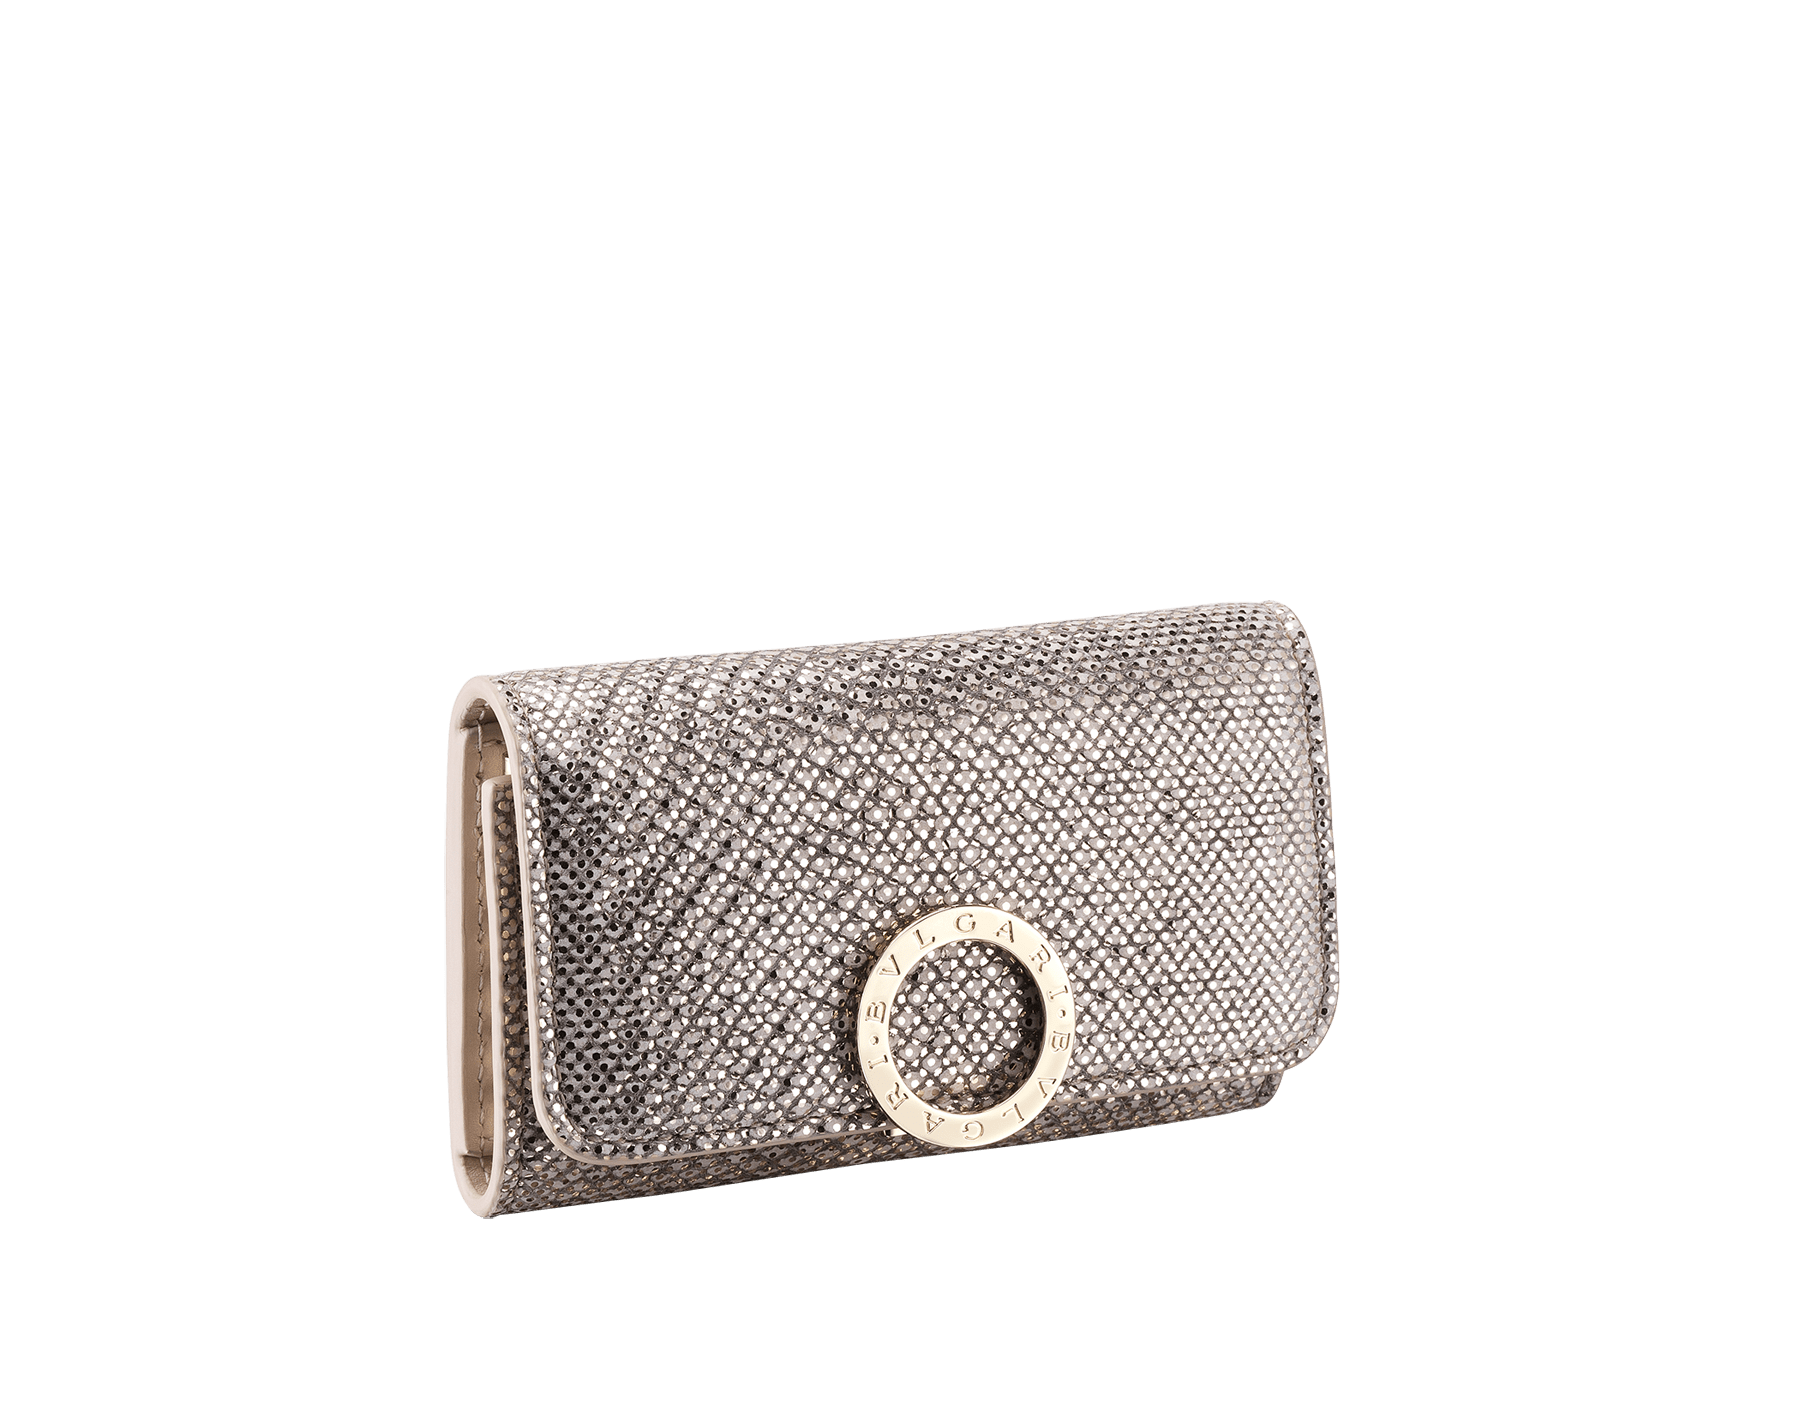 Small keyholder in emerald green shiny karung skin, emerald green calf leather and amethyst purple nappa lining. Iconic brass light gold plated clip featuring the BVLGARI BVLGARI motif. 579-KEYHOLDER-S-MK image 1